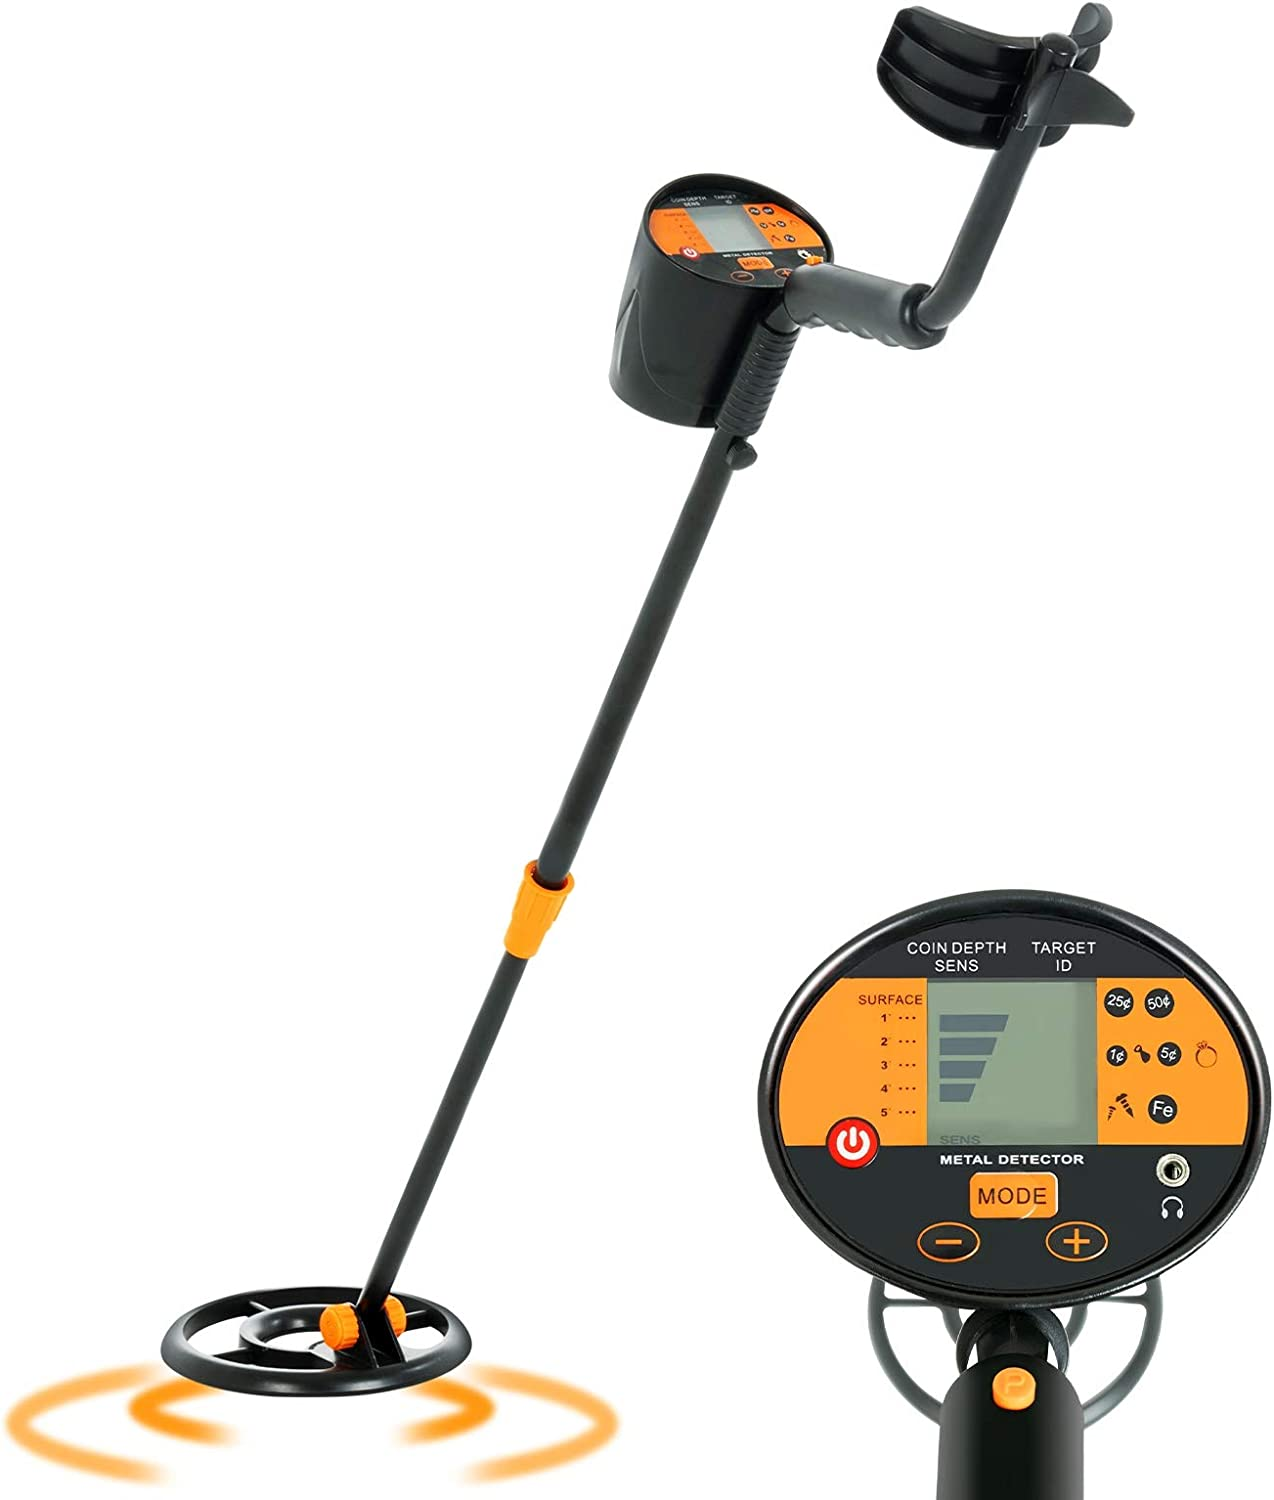 SUNCOO Adjustable Metal Detector High Finder Treasure Accuracy All Max 85% OFF items free shipping f